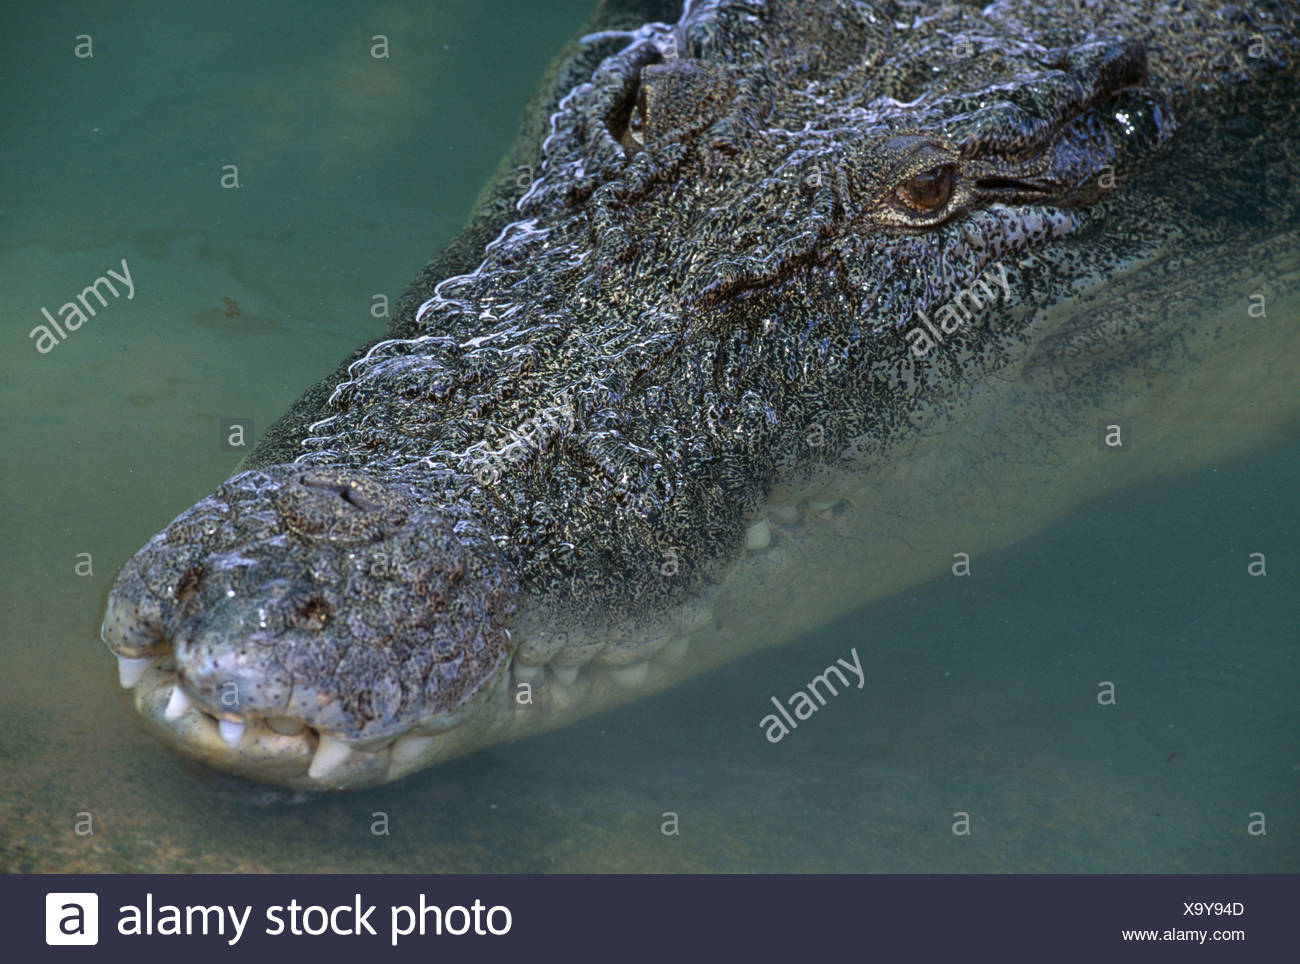 ESTUARINE CROCODILE Stock Photo